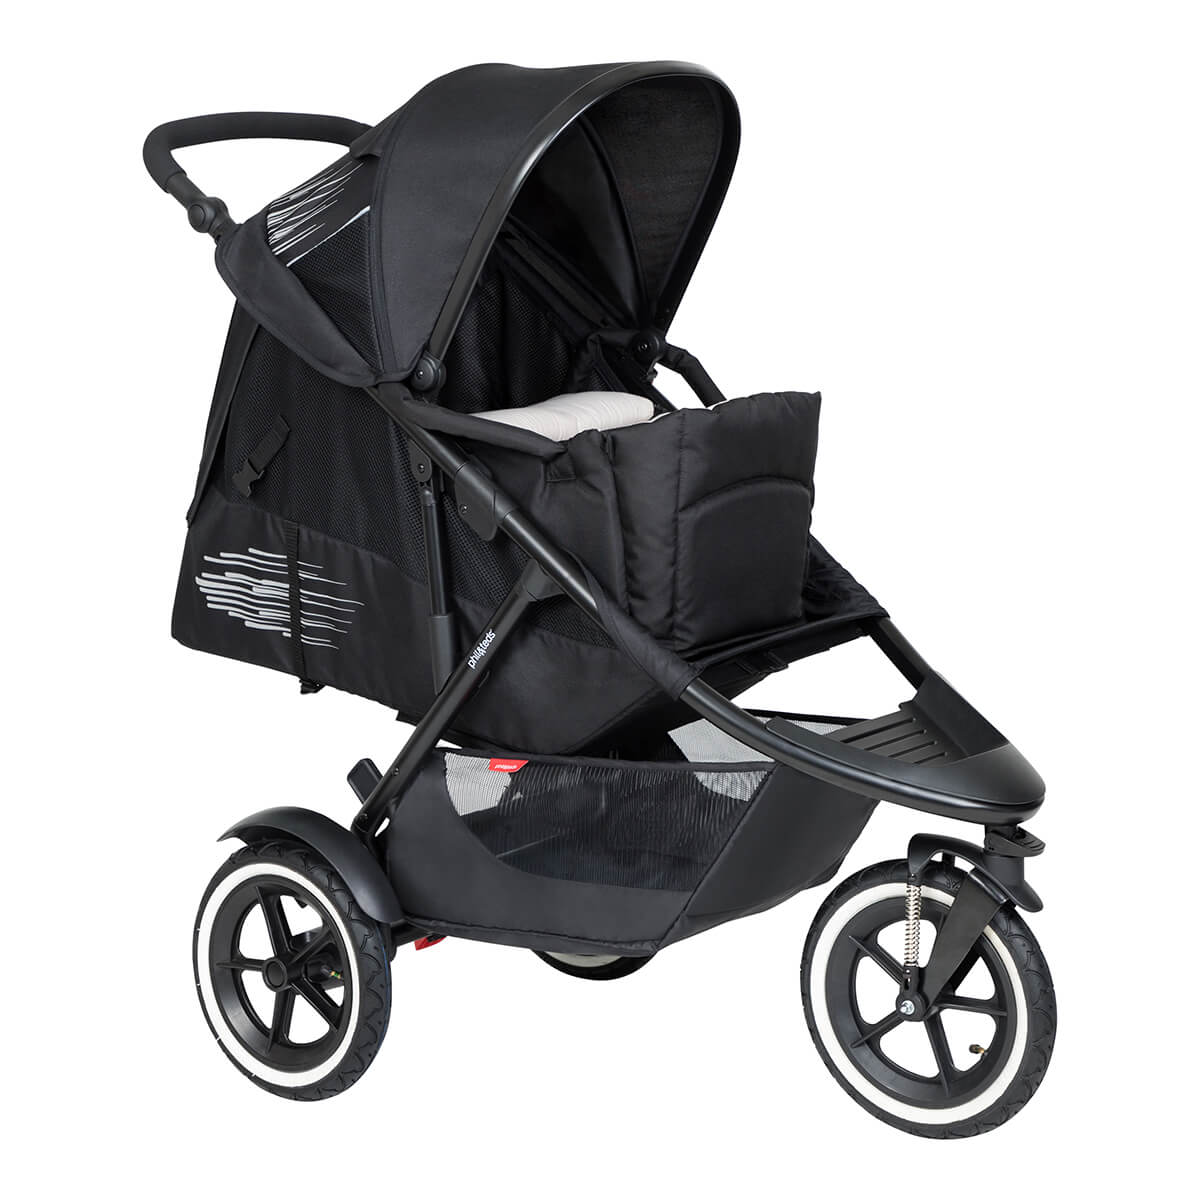 https://cdn.accentuate.io/4509527965784/19272668119128/philteds-sport-poussette-with-cocoon-full-recline-v1626484397387.jpg?1200x1200